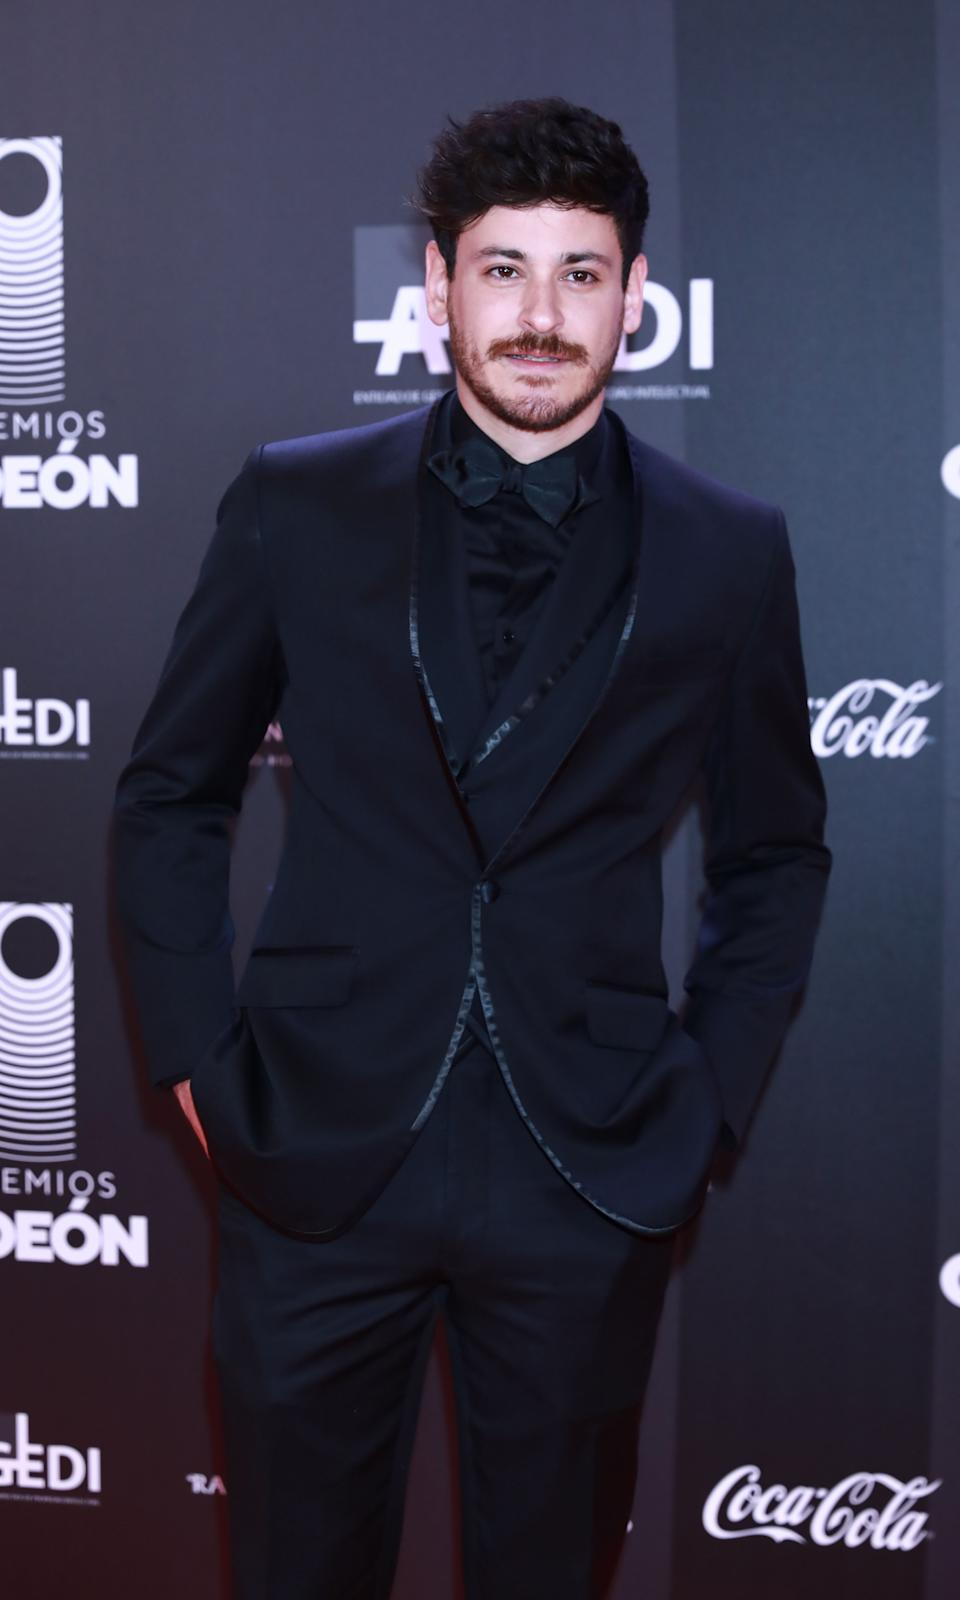 MADRID, SPAIN - JANUARY 20: Spanish singer Luis Cepeda attends Odeon Awards 2020 at Royal Theater on January 20, 2020 in Madrid, Spain. (Photo by Europa Press Entertainment/Europa Press via Getty Images)